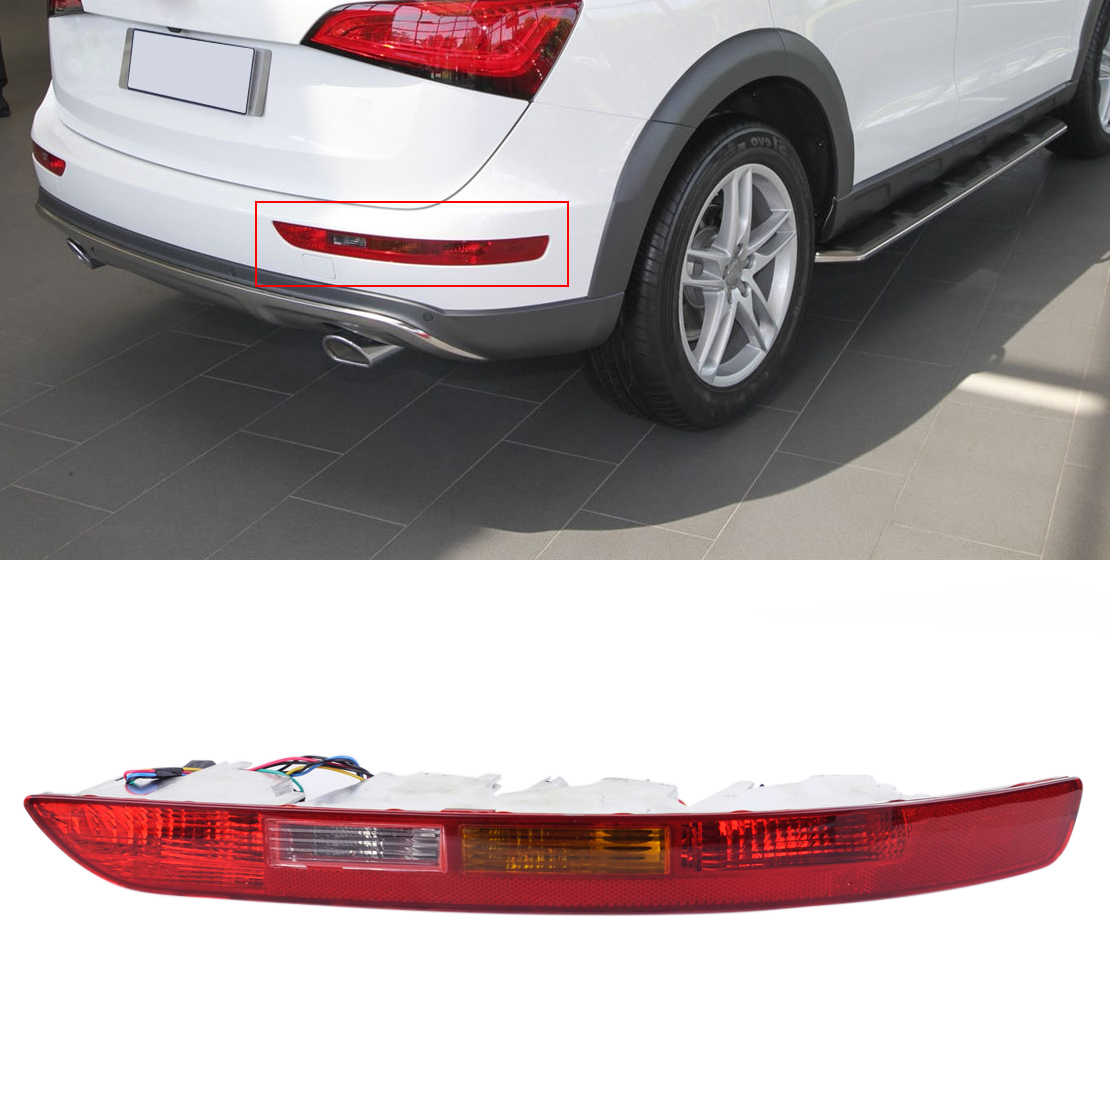 CITALL 8R0945096 Rear Right Side Lower Bumper Tail Light Lamp Reverse Fog Lamp Acc for Audi Q5 2009 - 2012 2013 2014 2015 2016 купить ауди q 5 2009